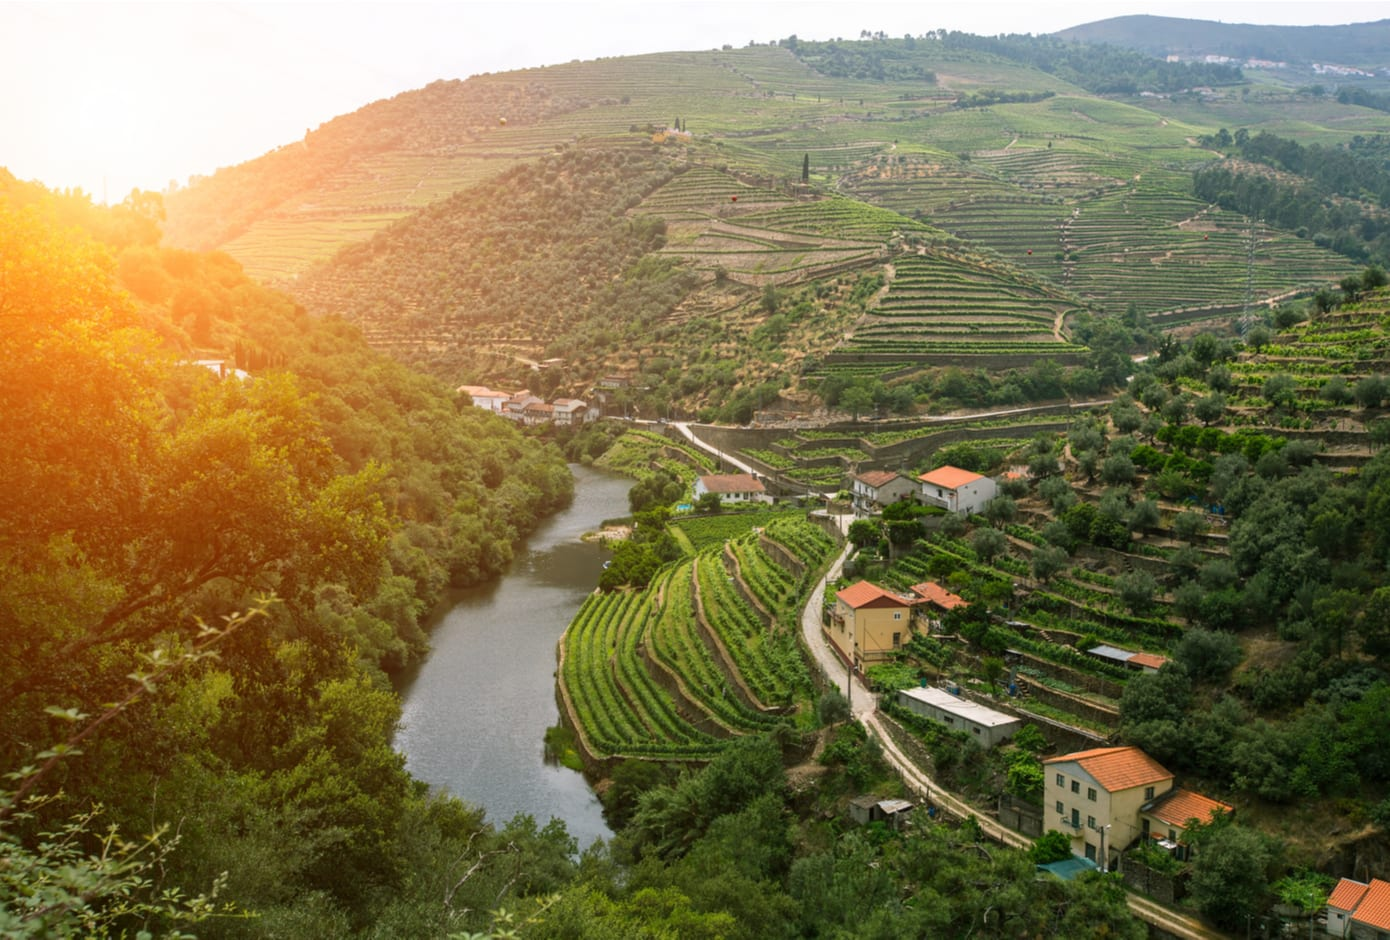 Aerial view of the Douro wine region, in Portugal